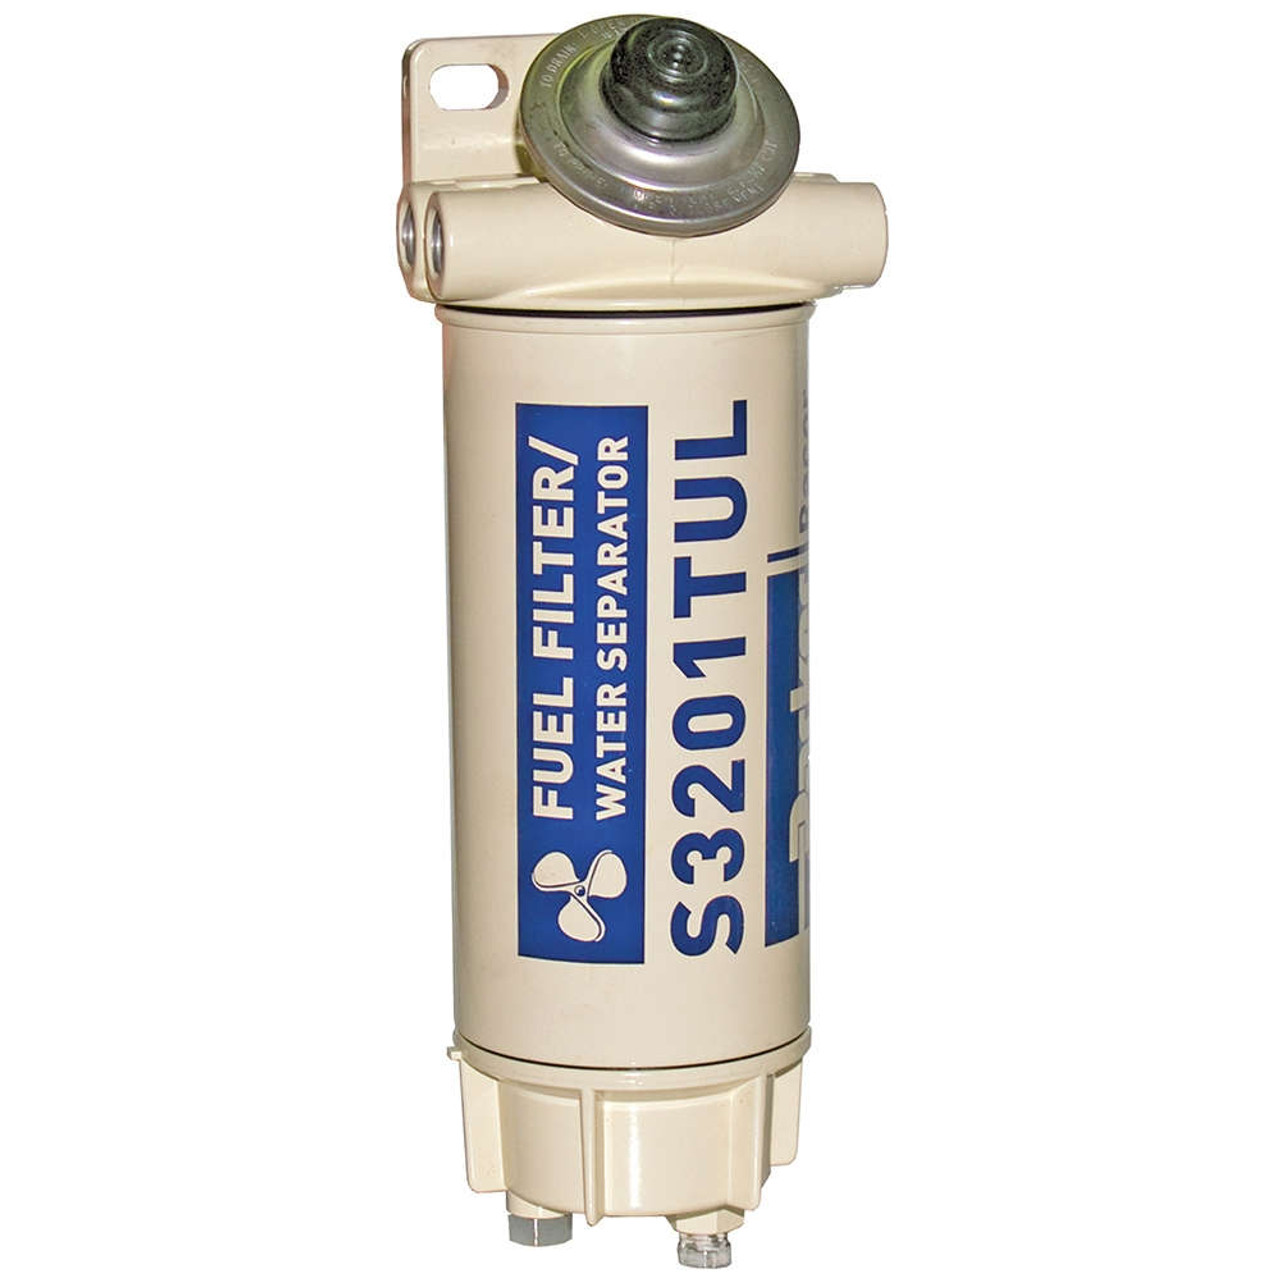 Diesel Fuel Water Separator Filter Alliance Racor Aquabloc Marine 3 8 In 90 Gph Spin On Replace A